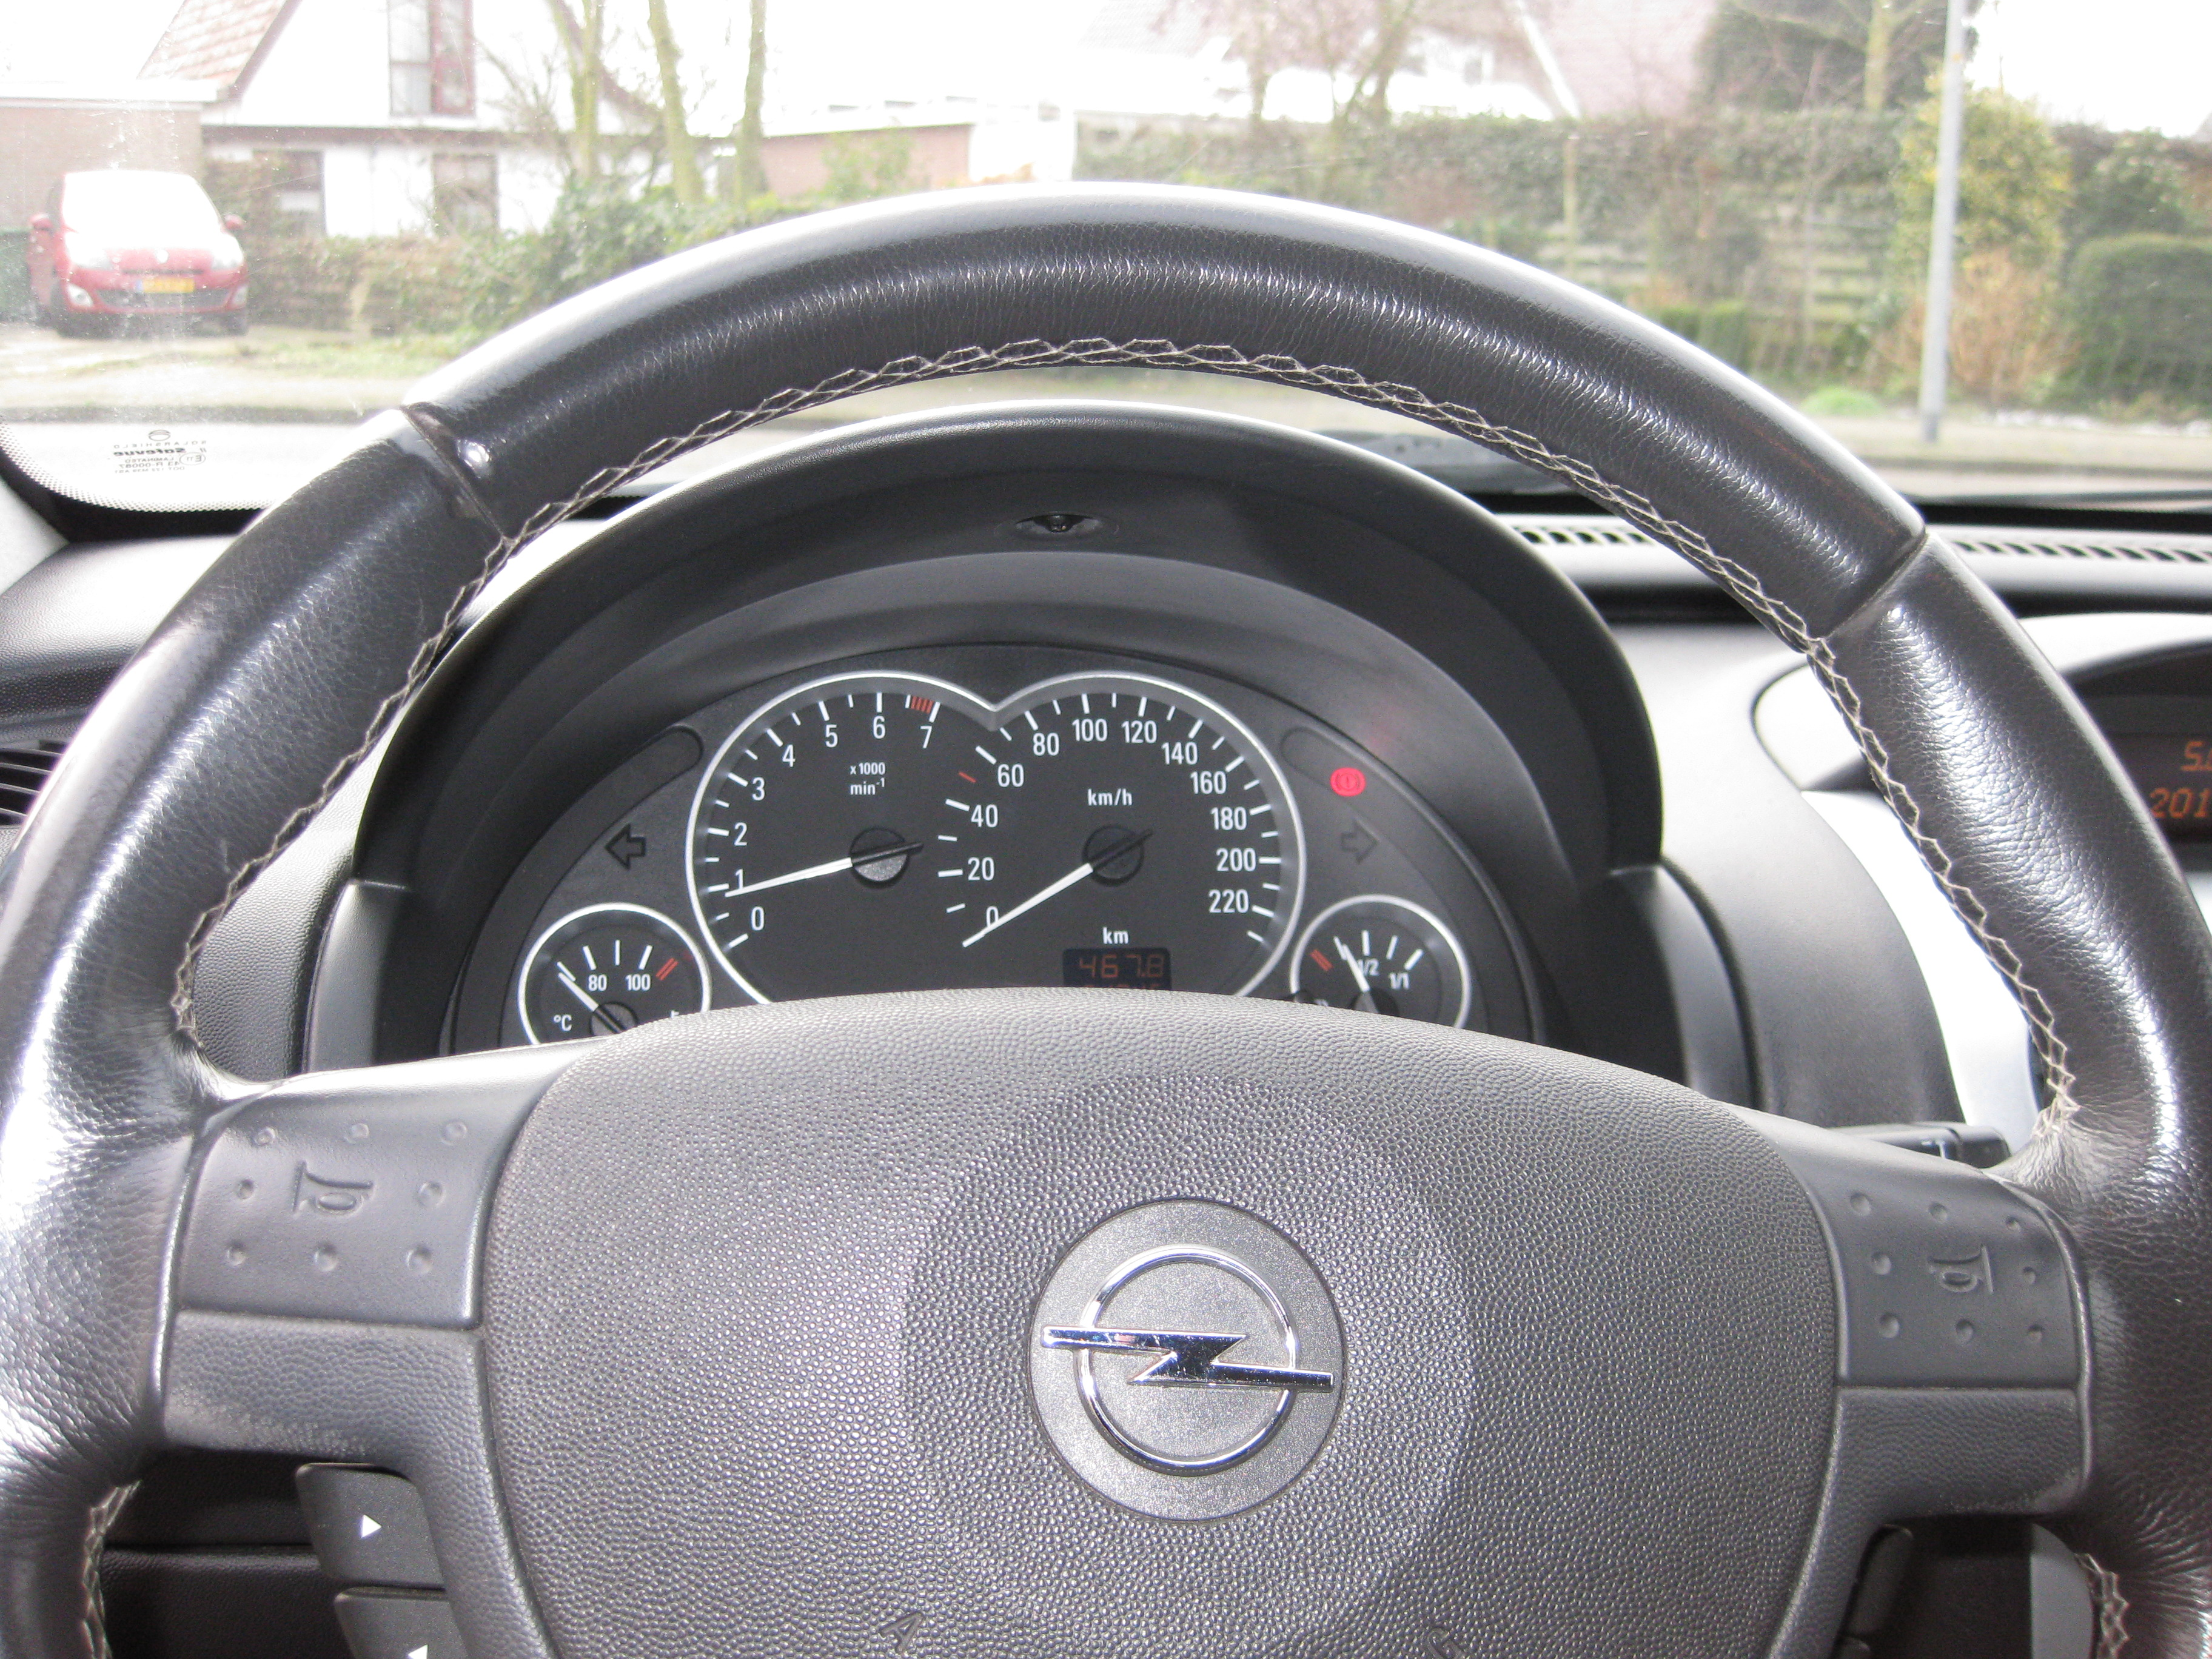 OPEL CORSA 73-NJ-GZ DASHBOARD